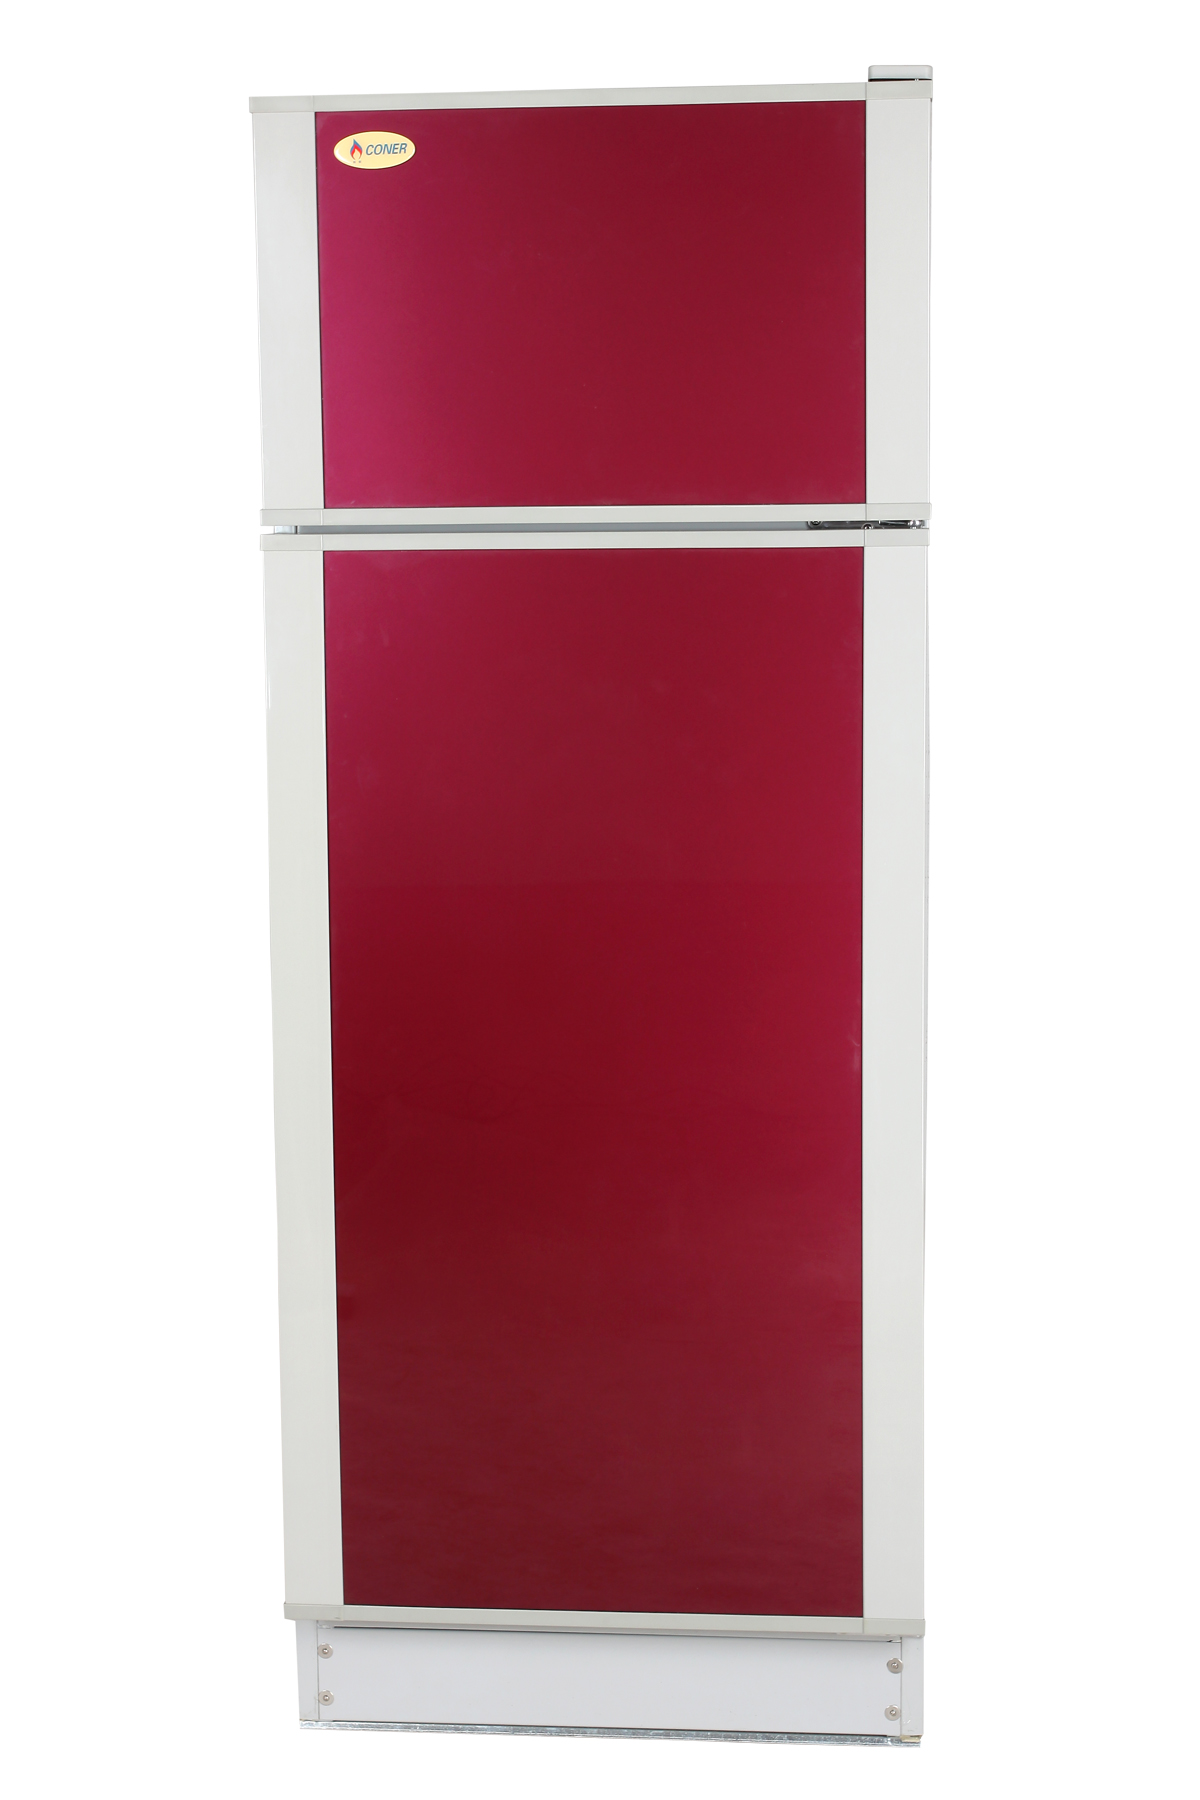 MC-300 Absorption Refrigerator